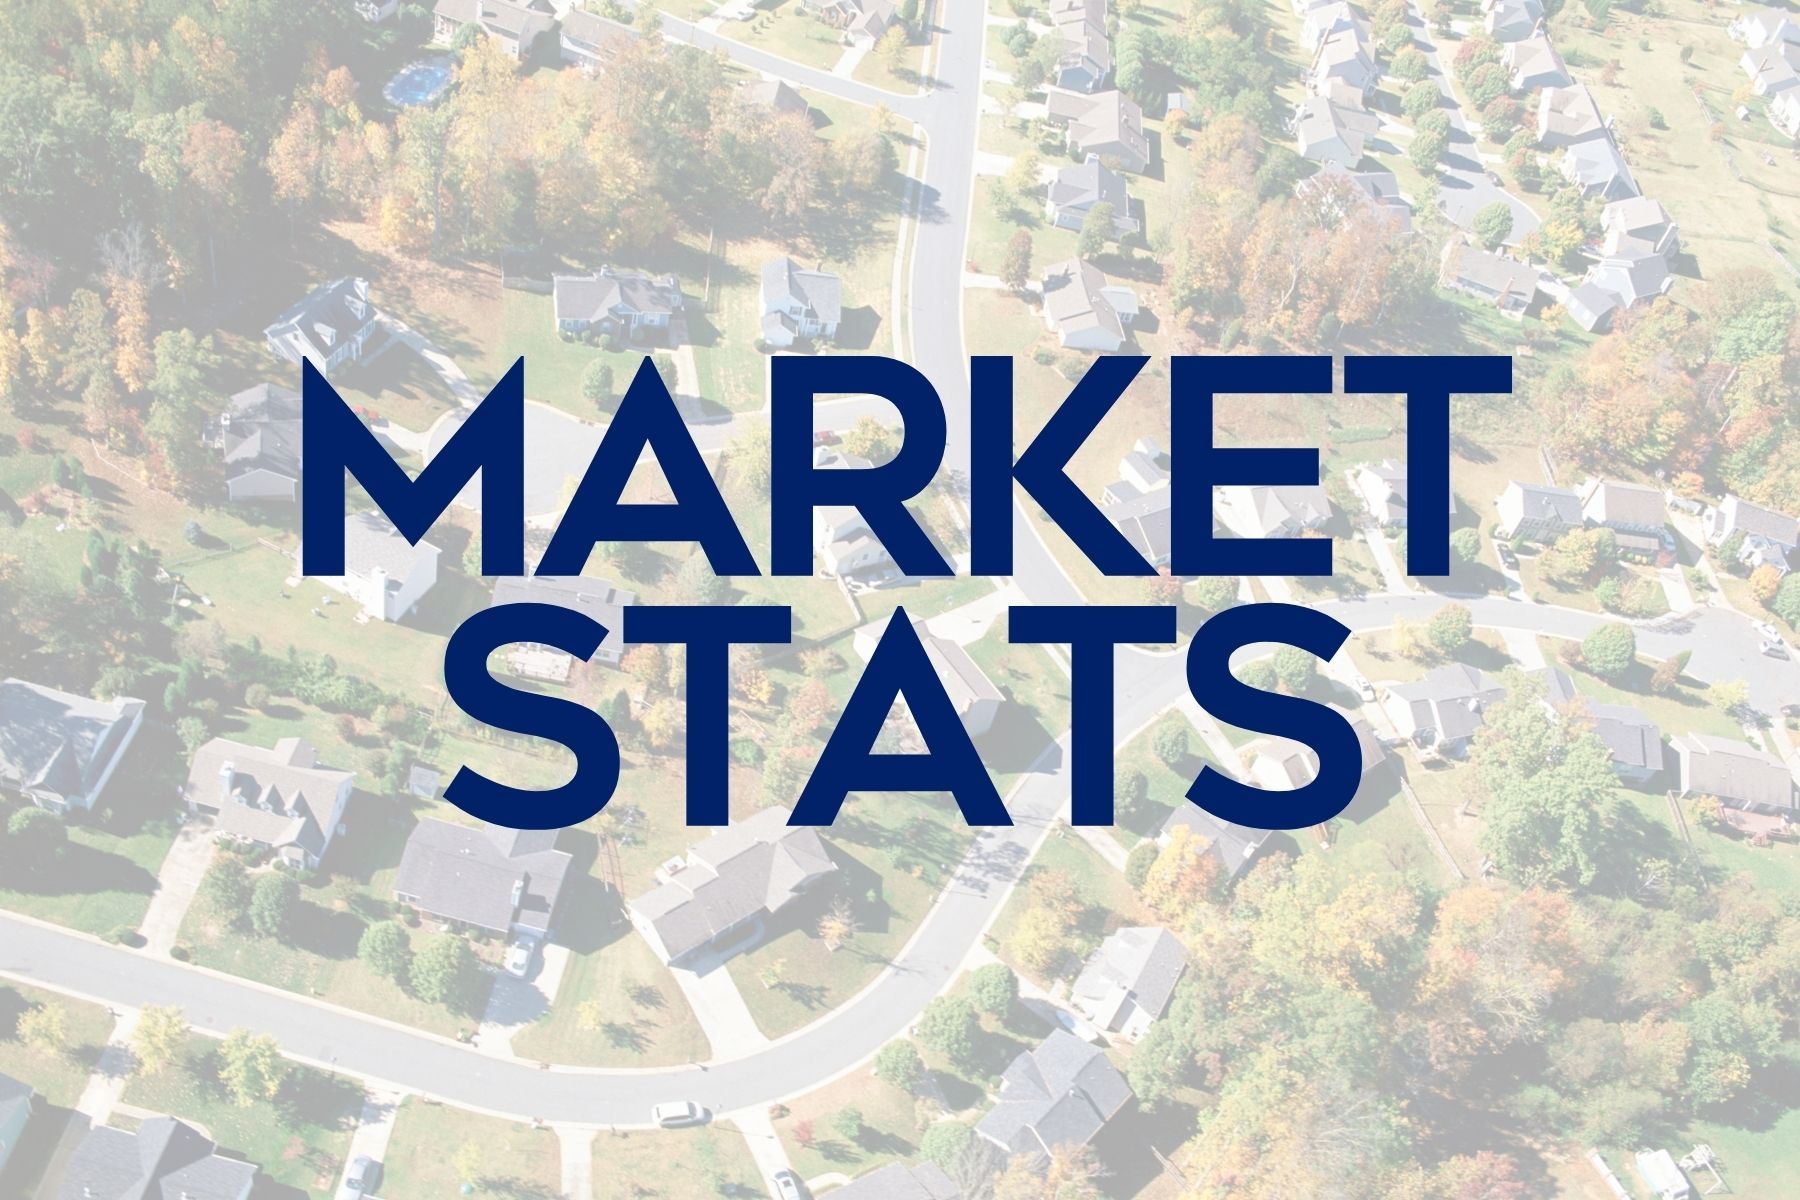 coldwell banker elite market stats blogs